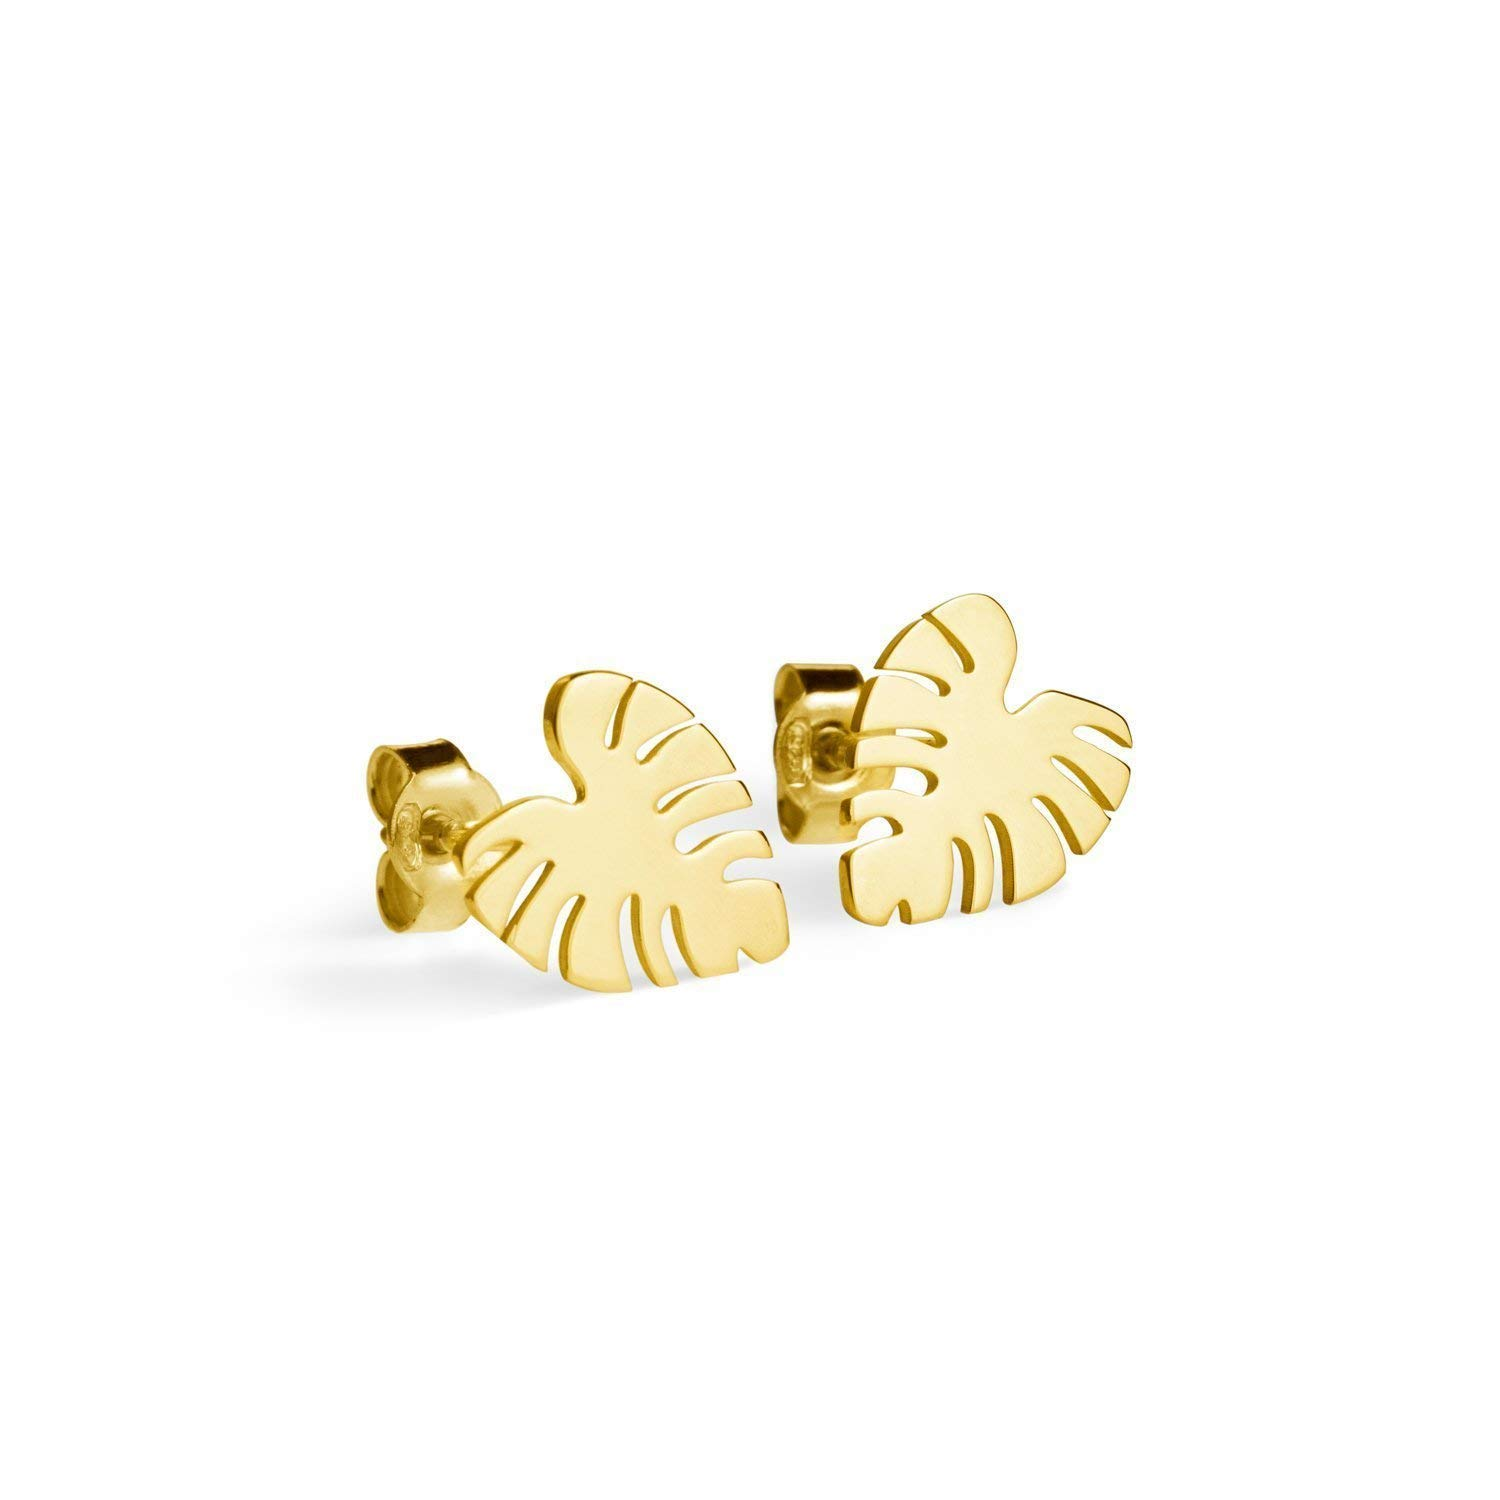 Tropical Safety and trust Leaf Studs 9K 14K Quantity limited Yellow Gold Earrings 18K